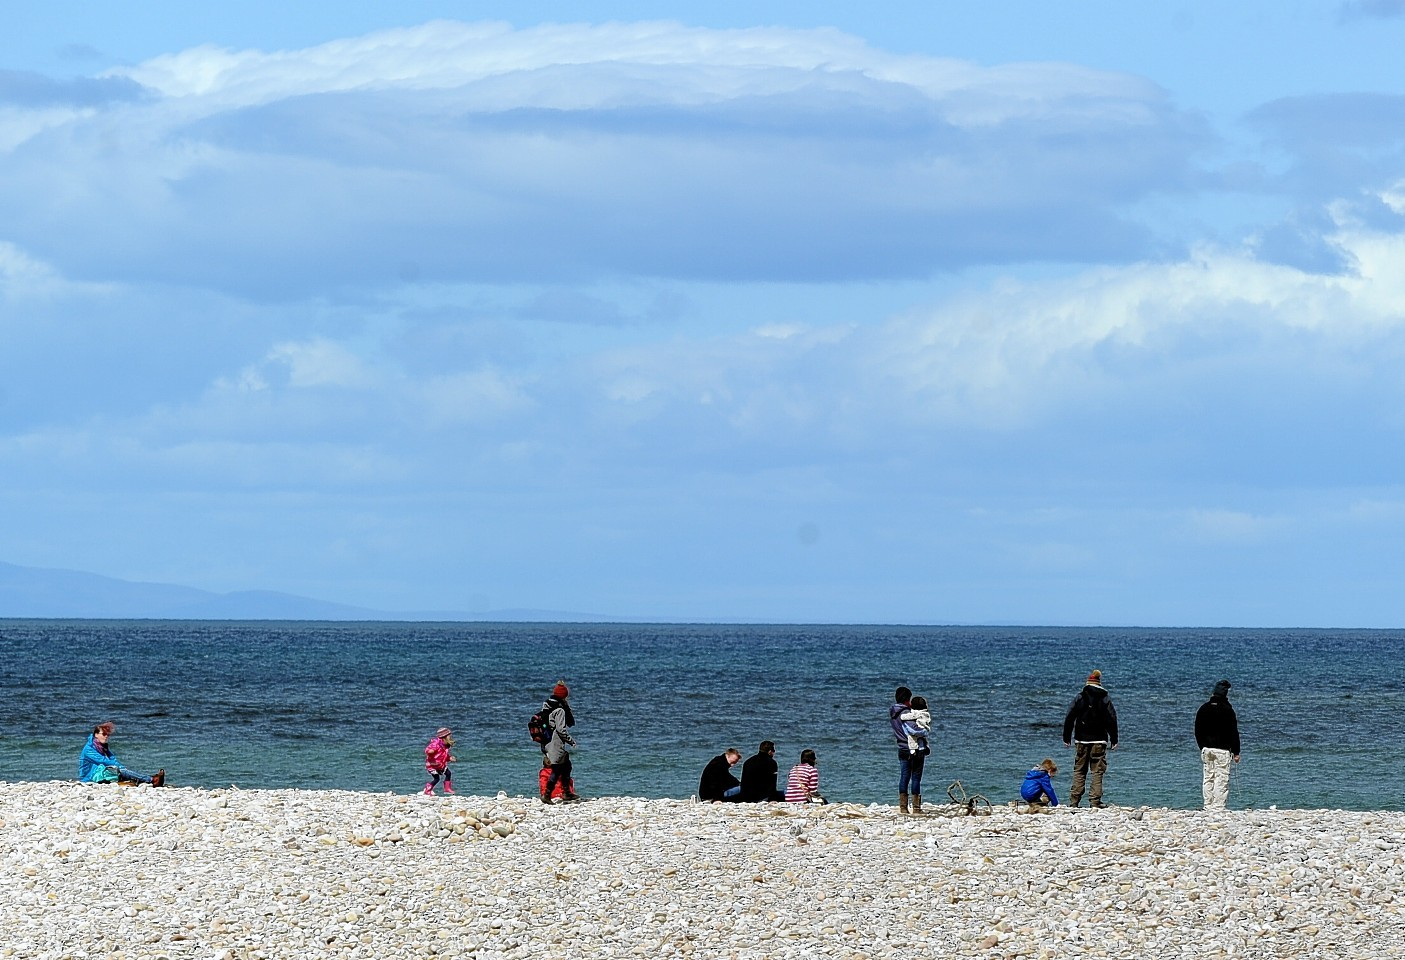 The Really Wild Festival at the Whale and Dolphin Conservation Centre at Spey Bay, Moray. Visitors to the festival look for dolphins from the beach. Picture by Gordon Lennox